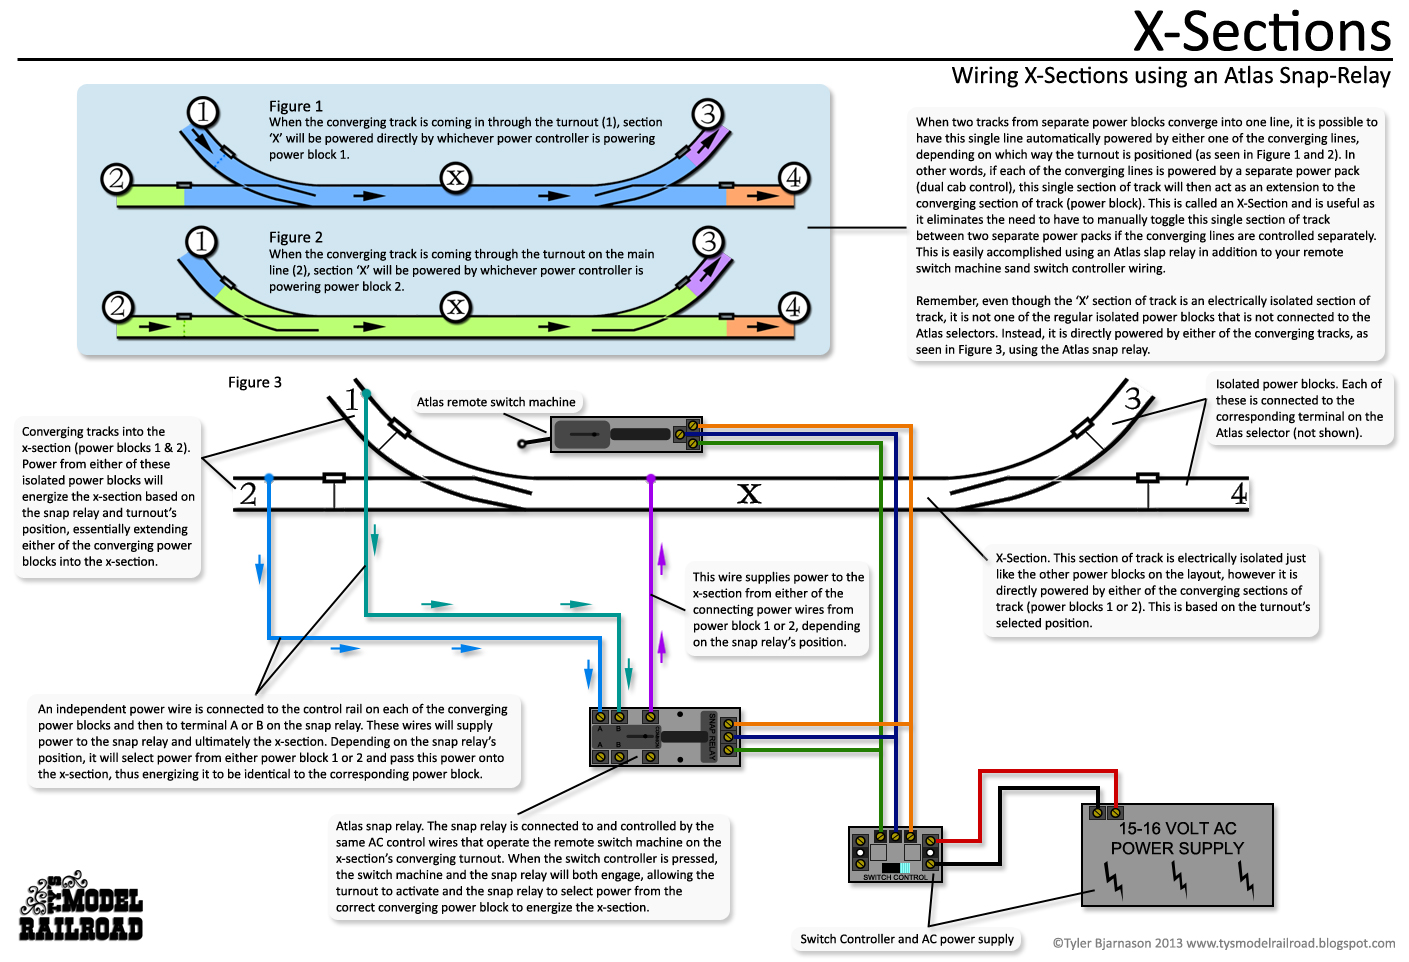 medium resolution of how to wire an x section using an atlas snap relay and existing remote switch